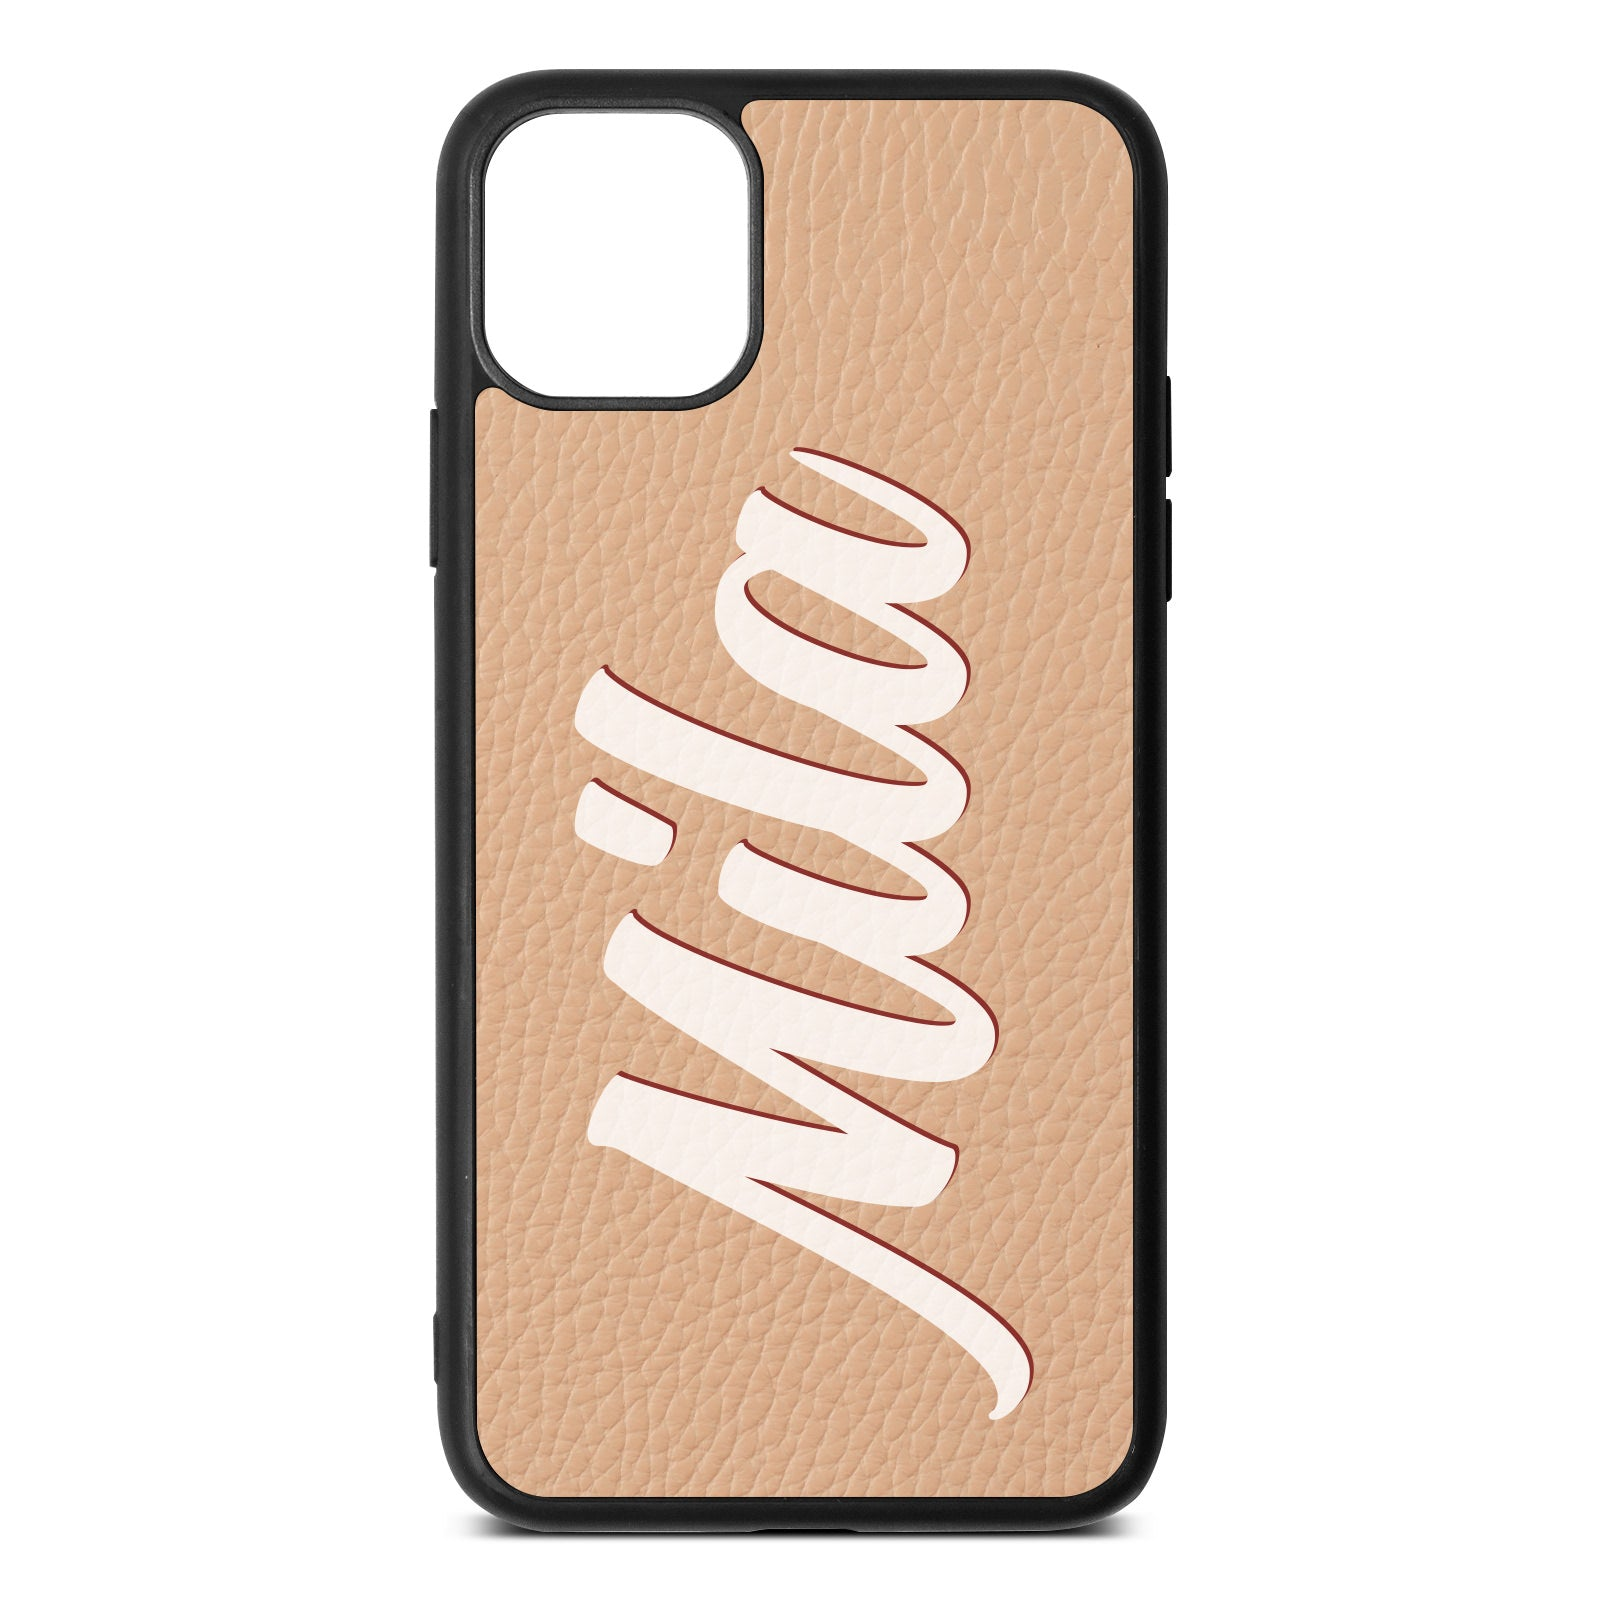 iPhone 11 Pro Max Nude Pebble Leather Case